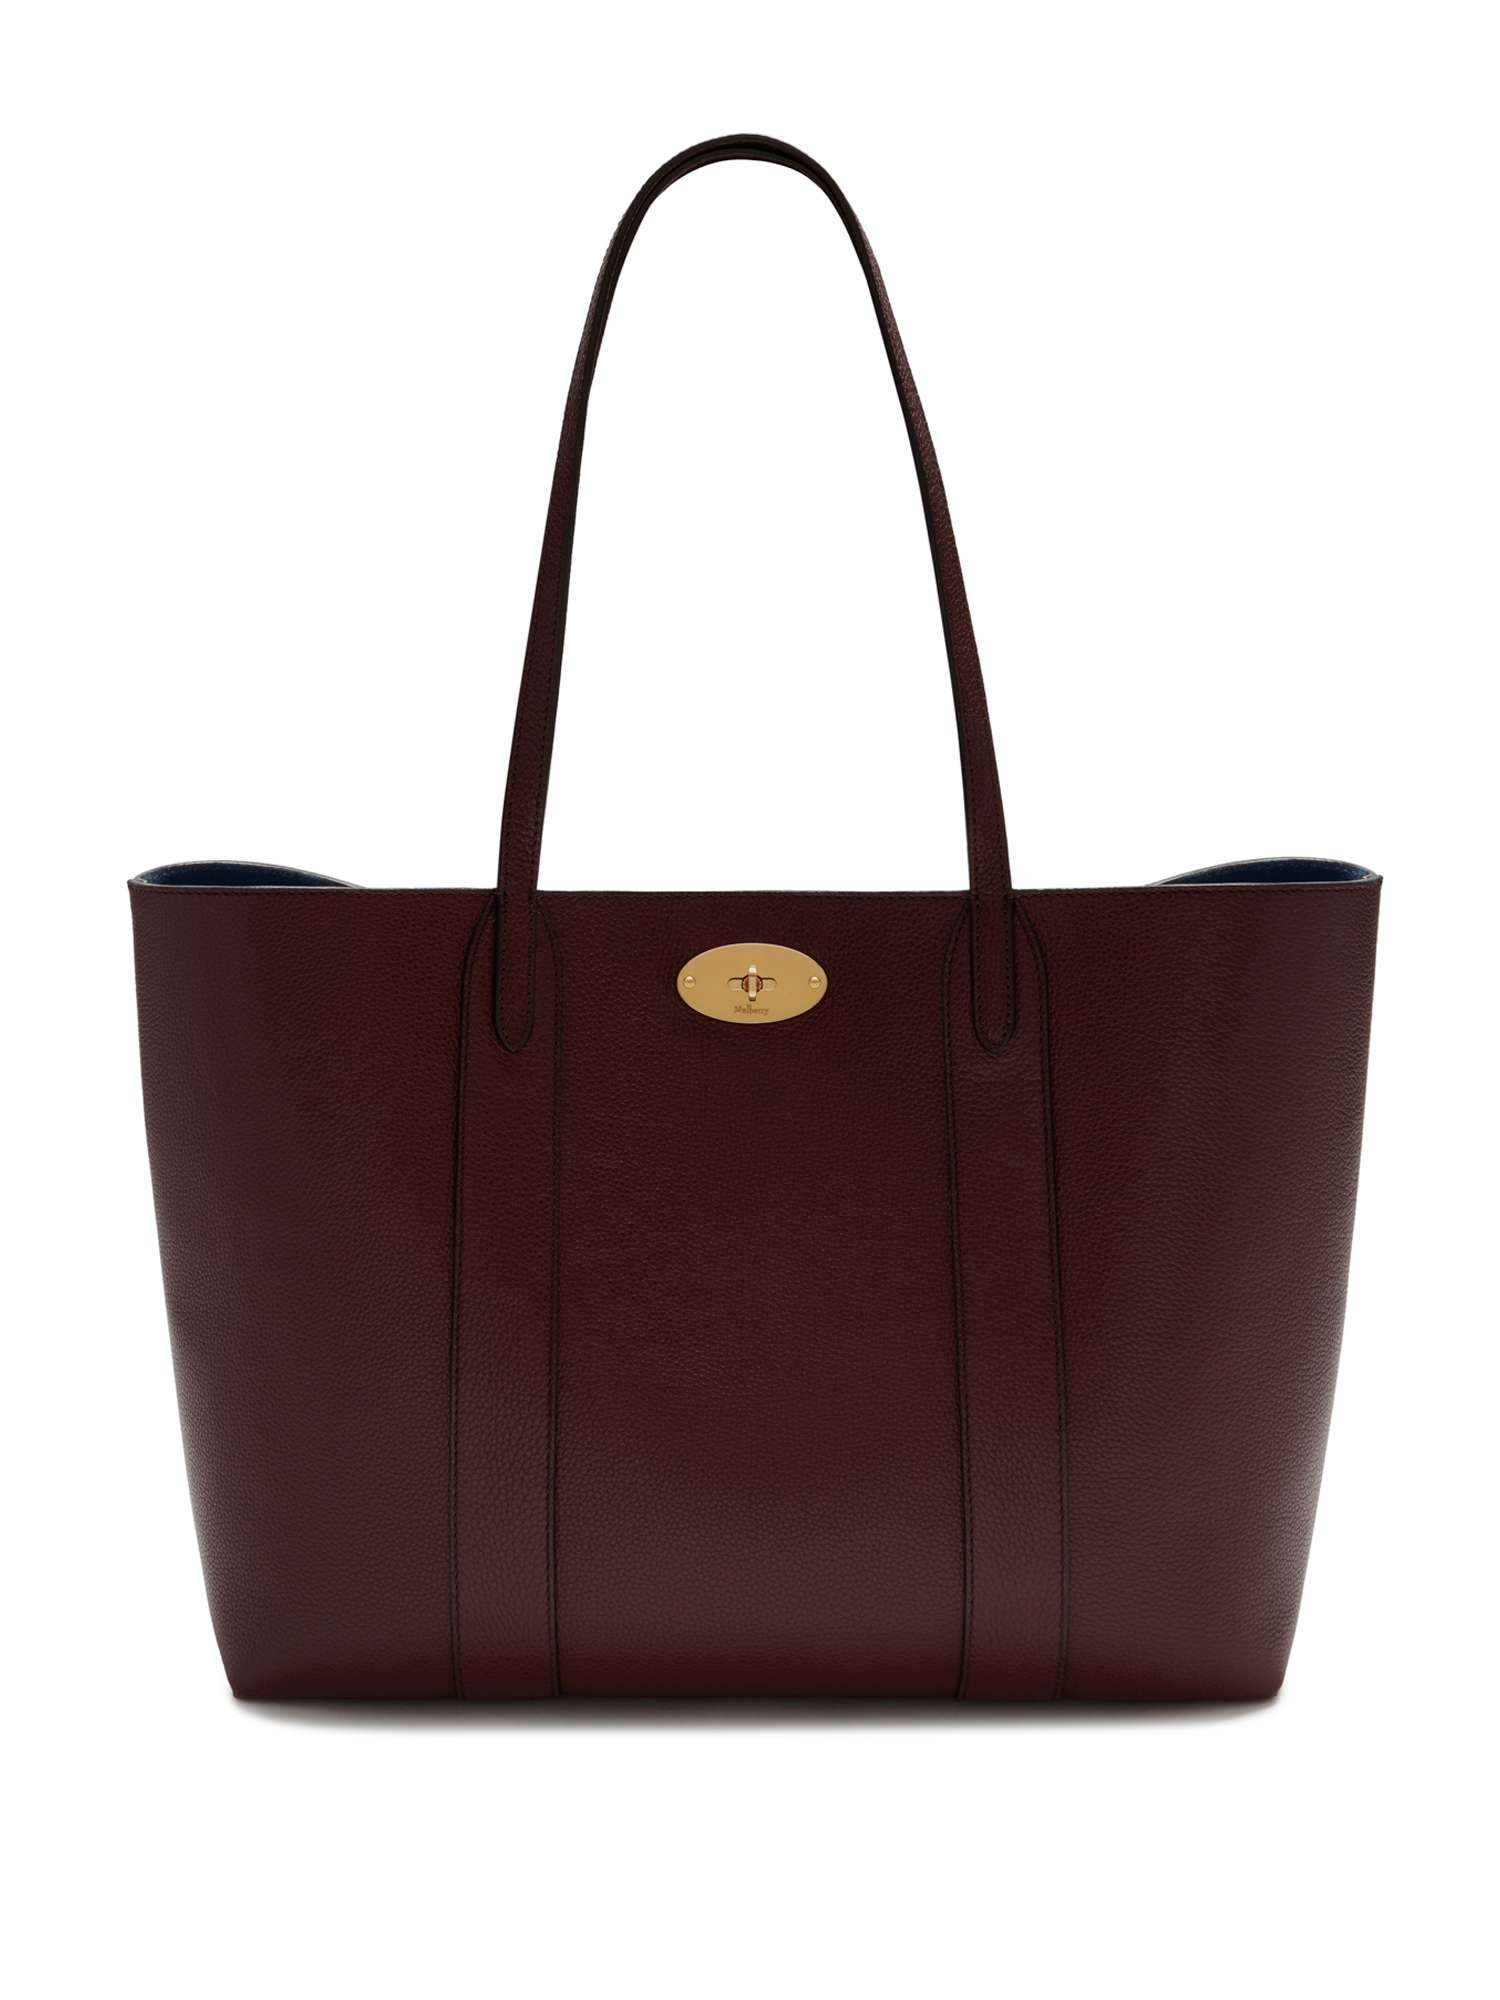 Mulberry Brown at House of Fraser fa37c2891958b